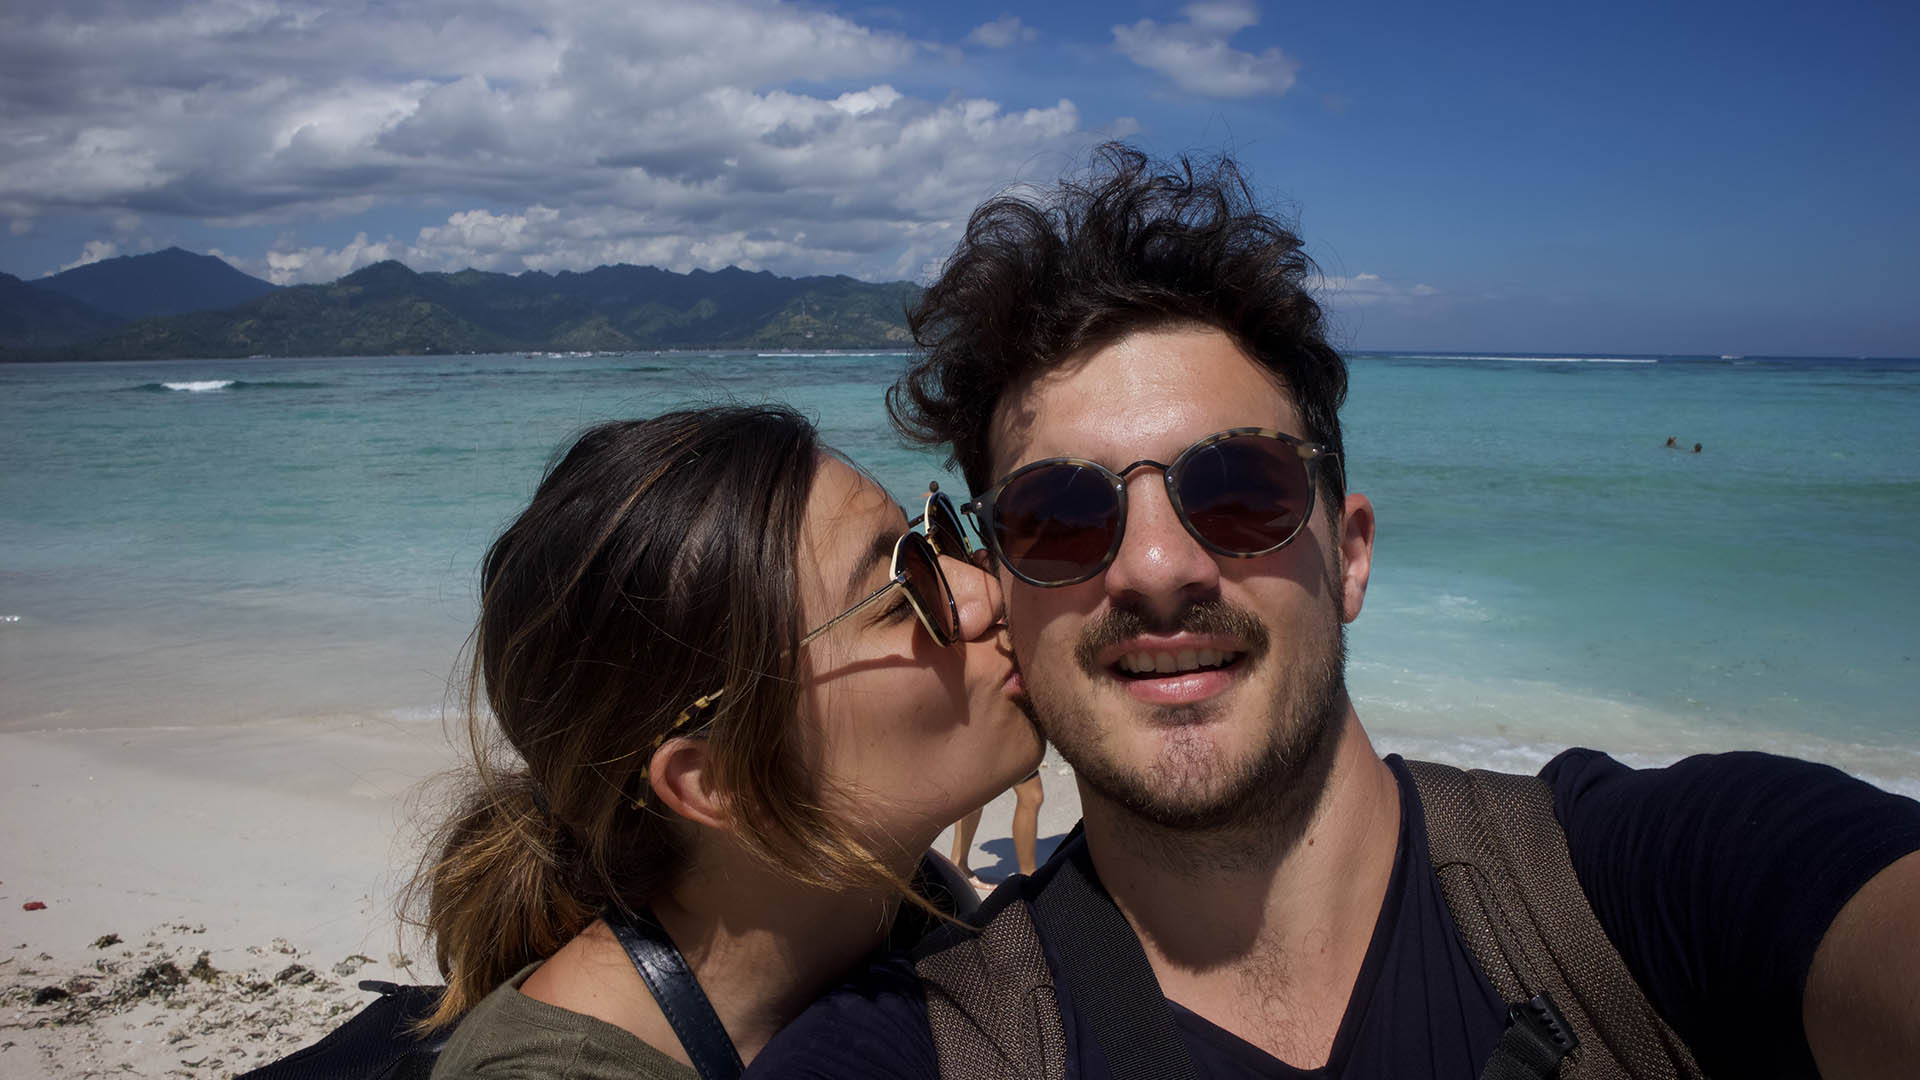 Digital Nomad Relationships: Love & Dating Advice from Nomads